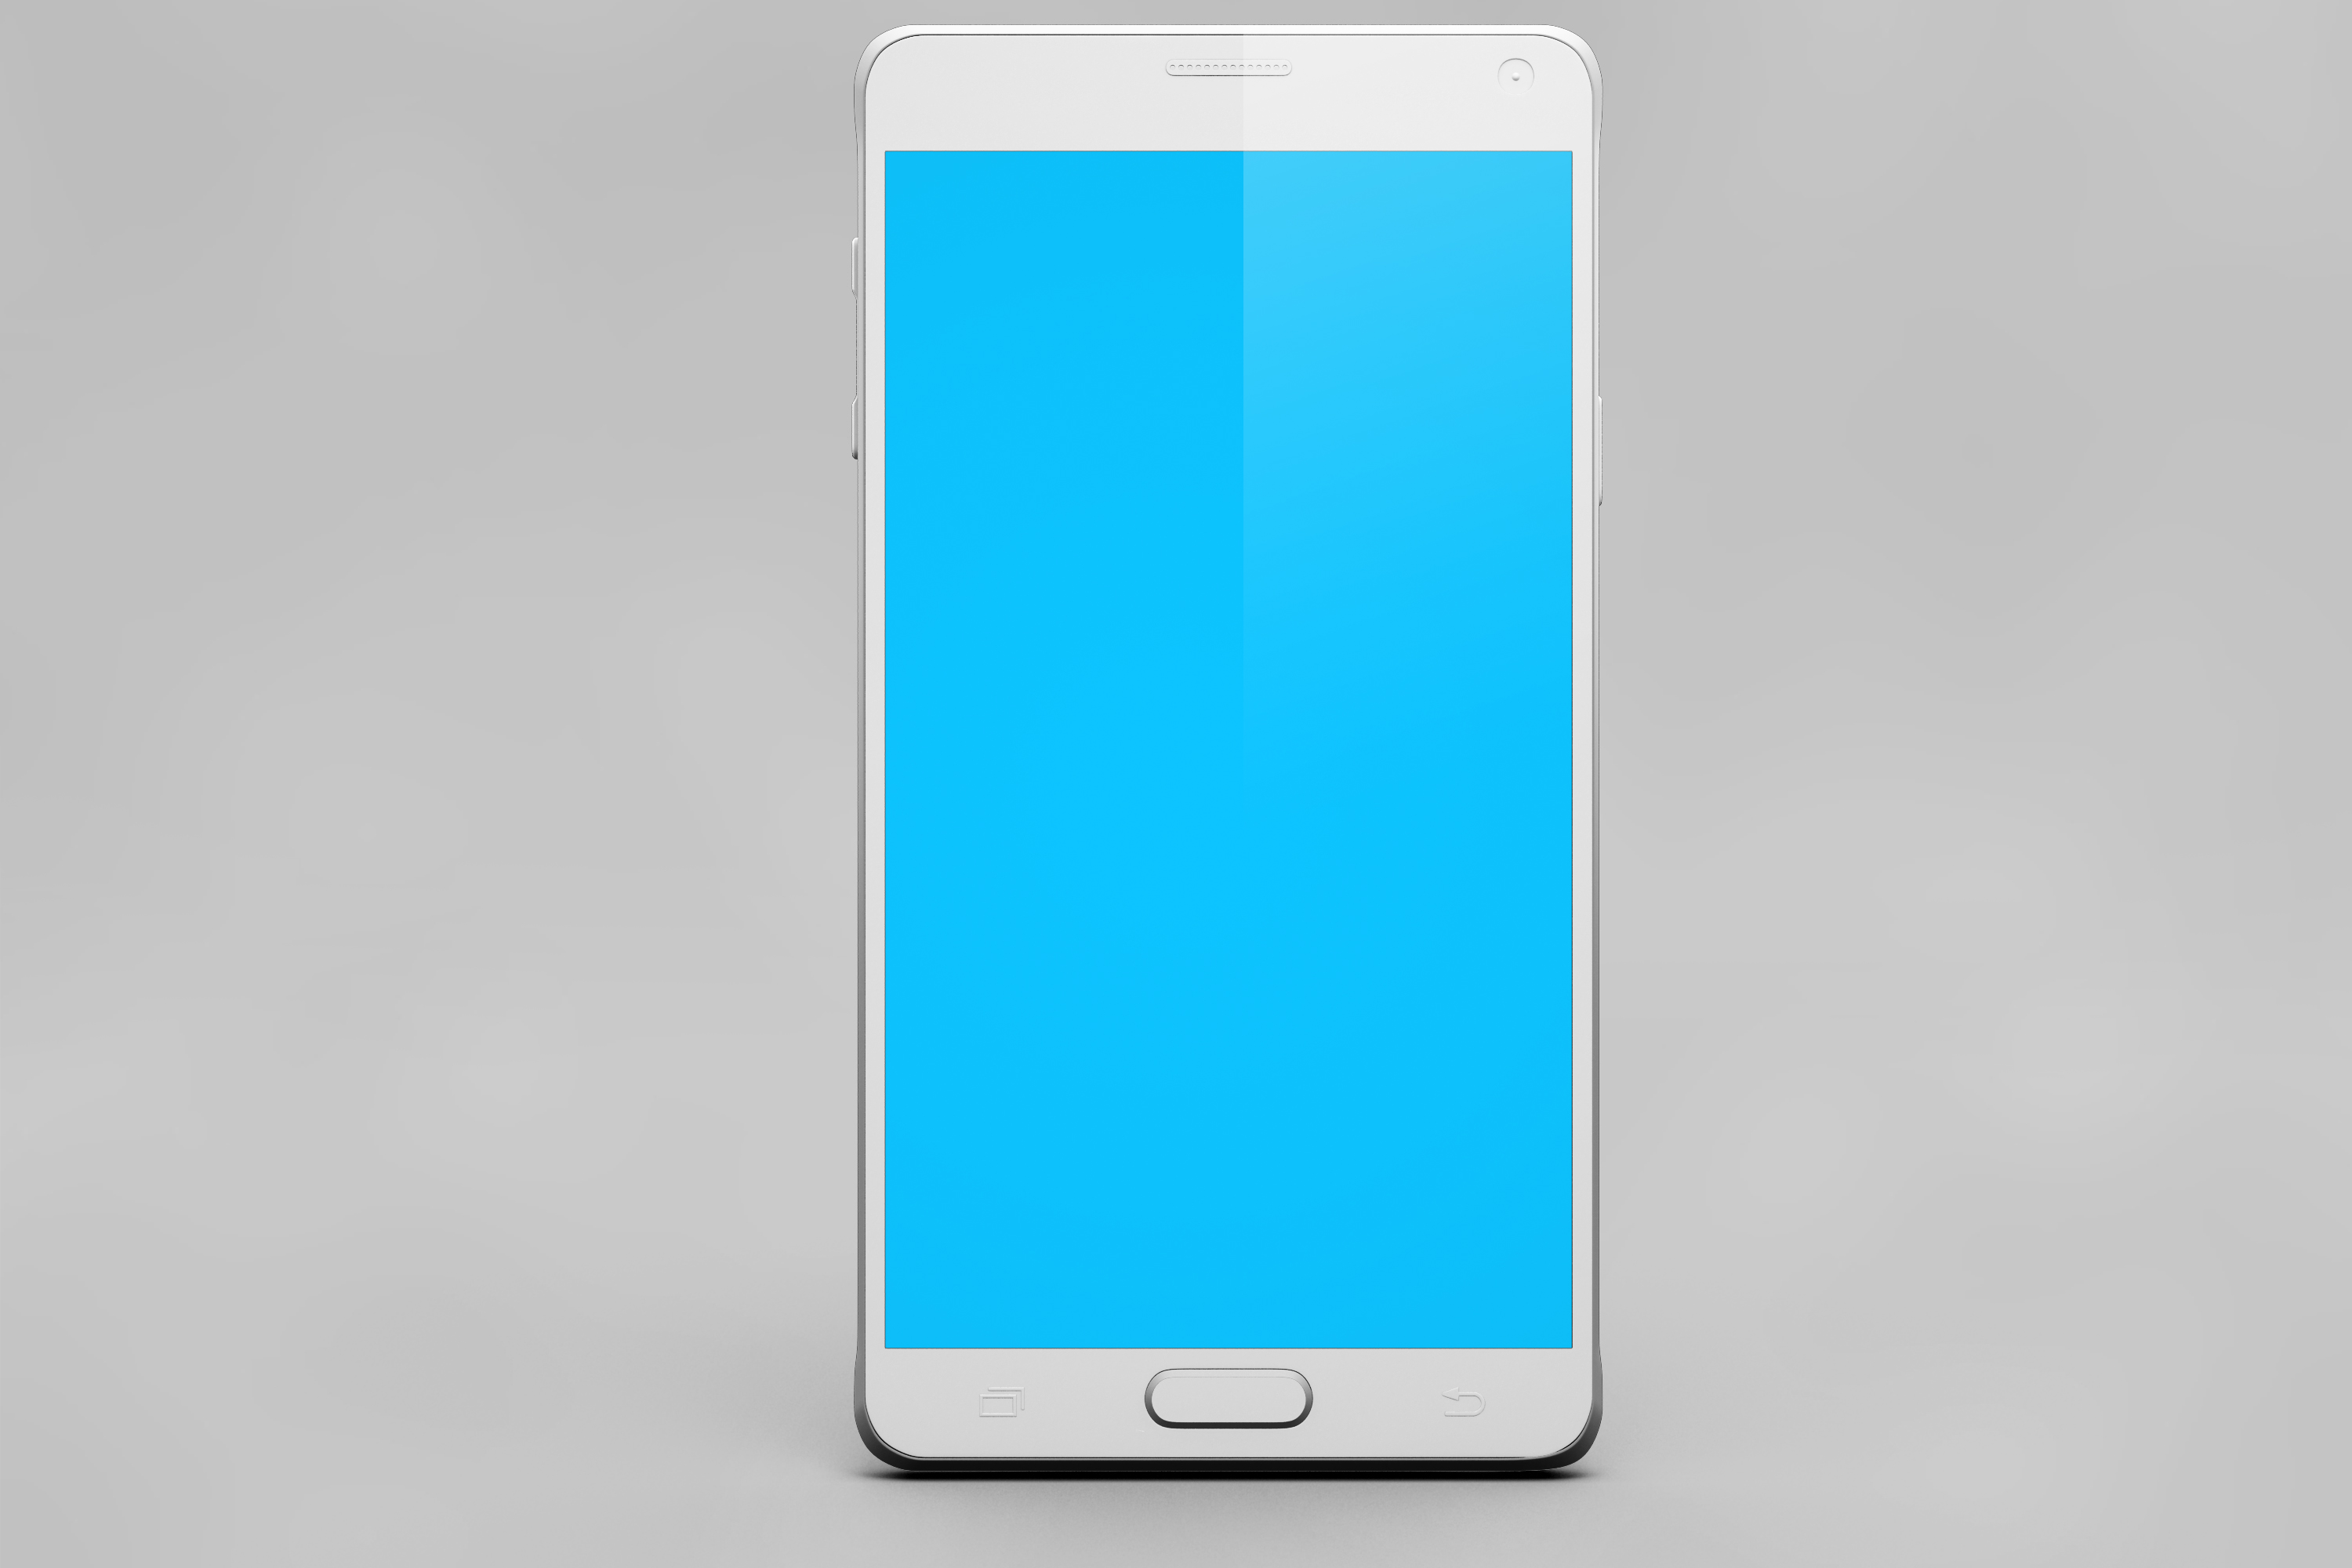 Samsung Galaxy Note 4 Mock-up example image 16